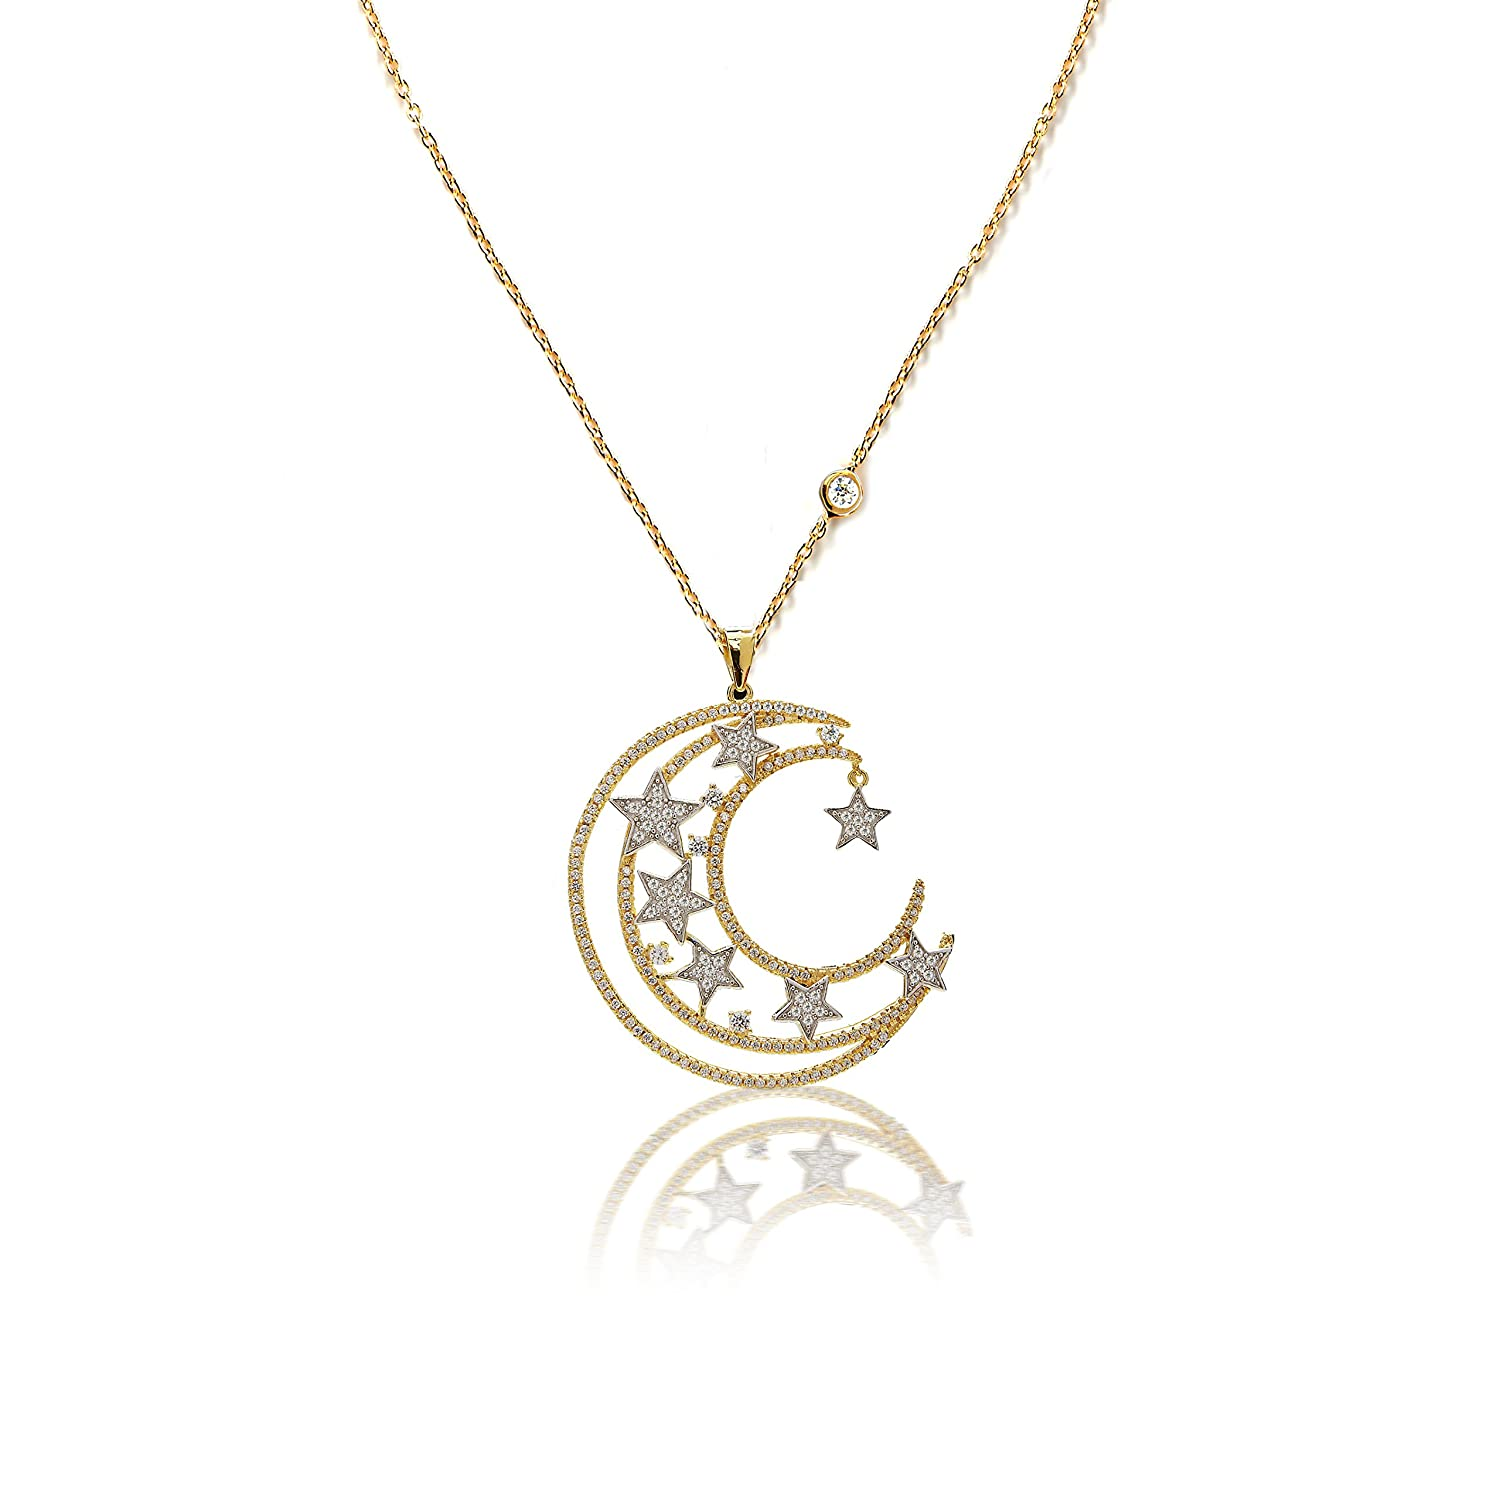 Joy and Rachel Gold Plated 925 Sterling Silver Round CZ Glaxy Collection Moon And Star Pendant Necklace